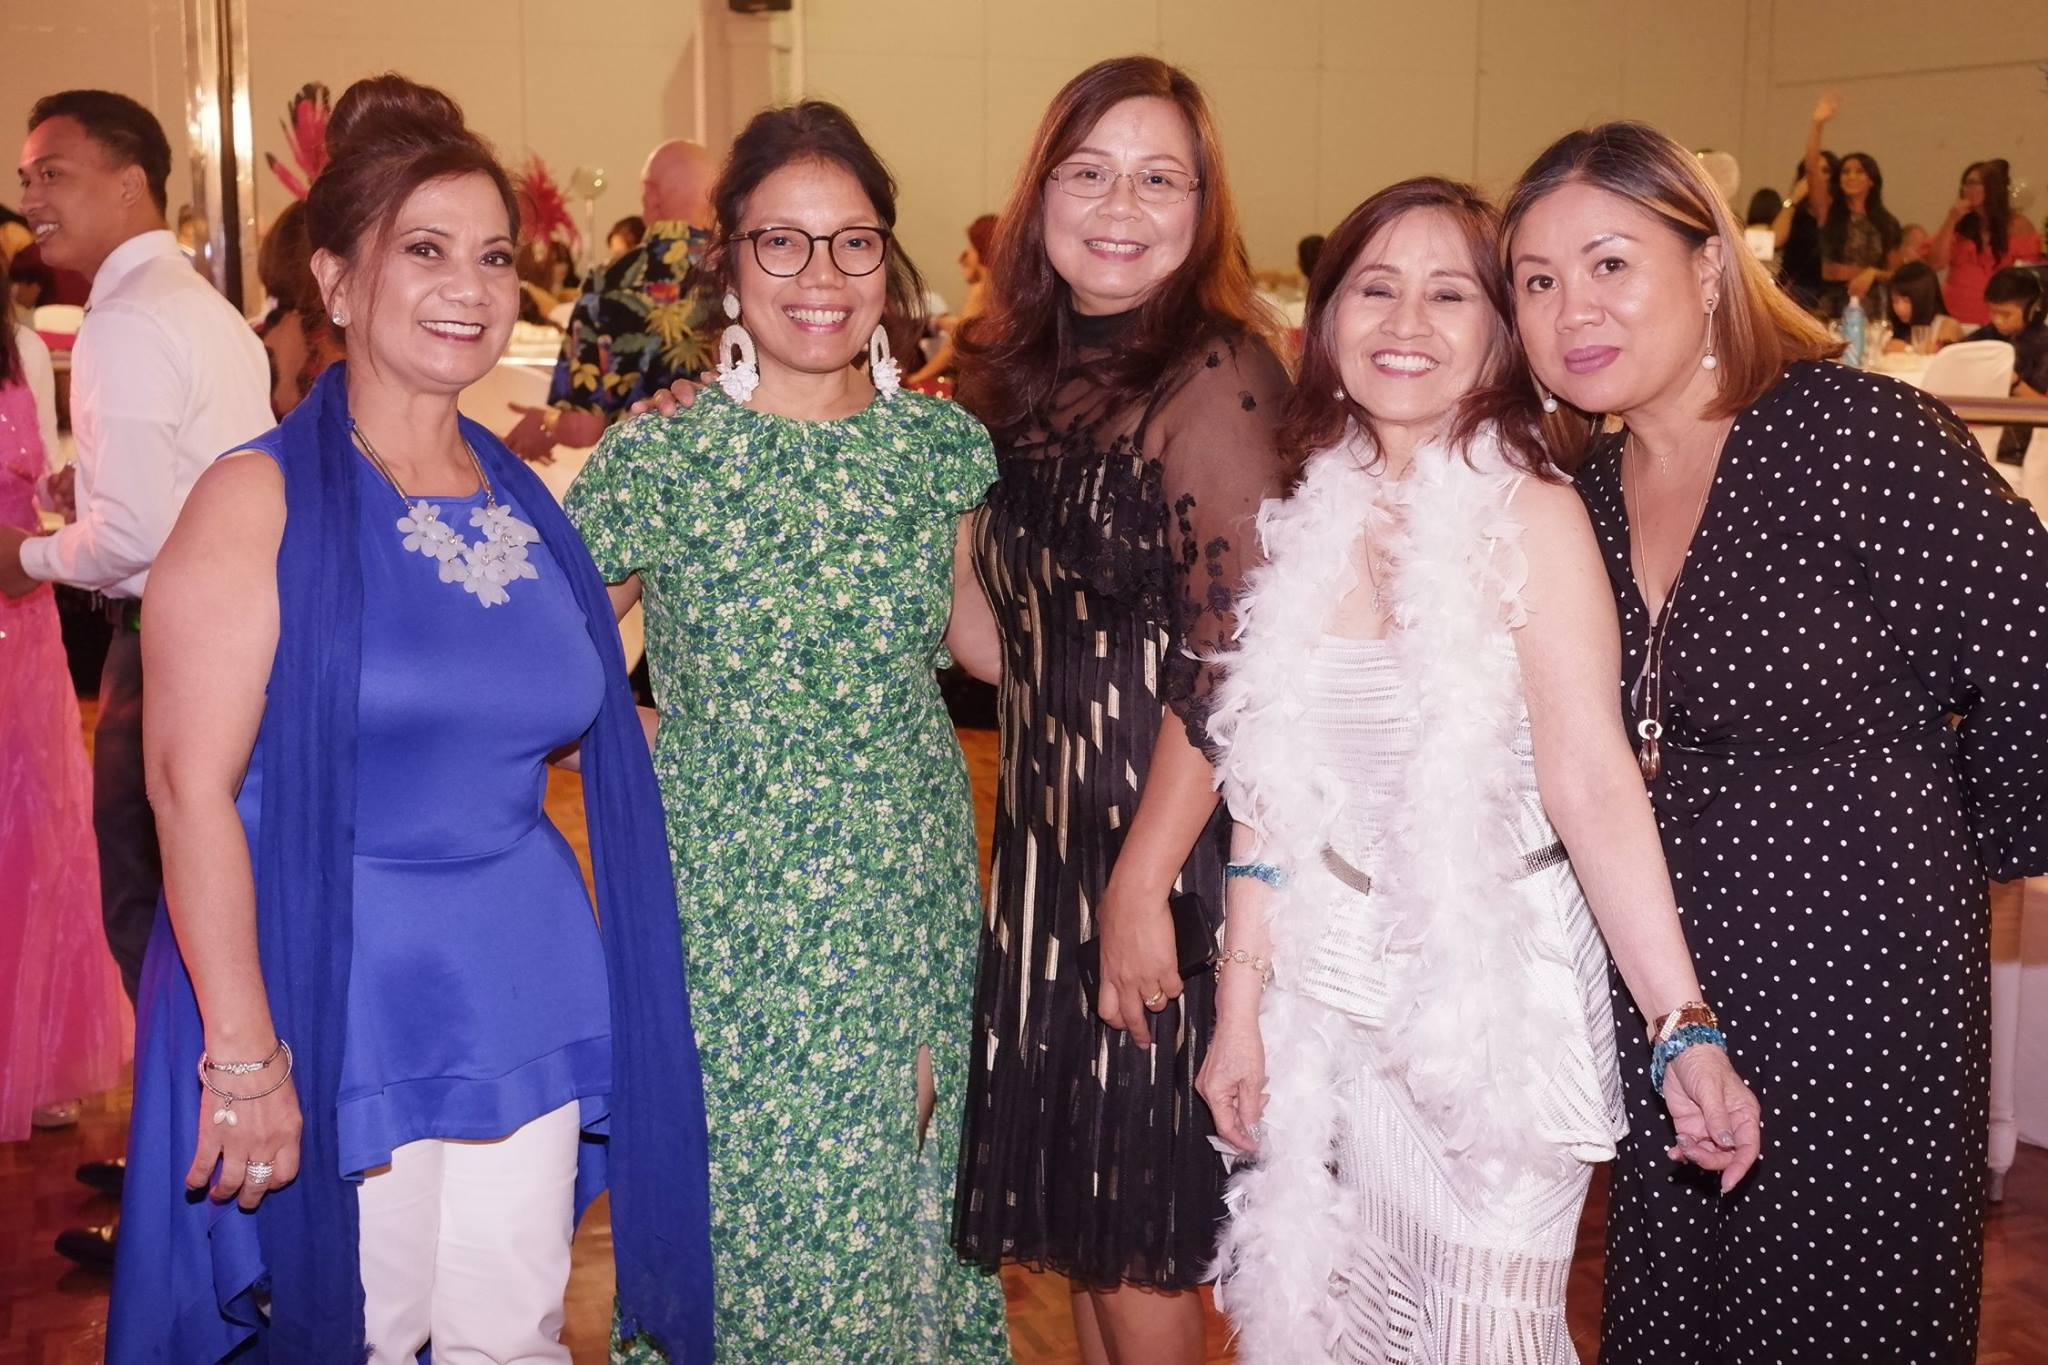 smad-rio-2019-nonprofit-melbourne-dinner-dance-melbourne-australia-chrity-ball.jpg